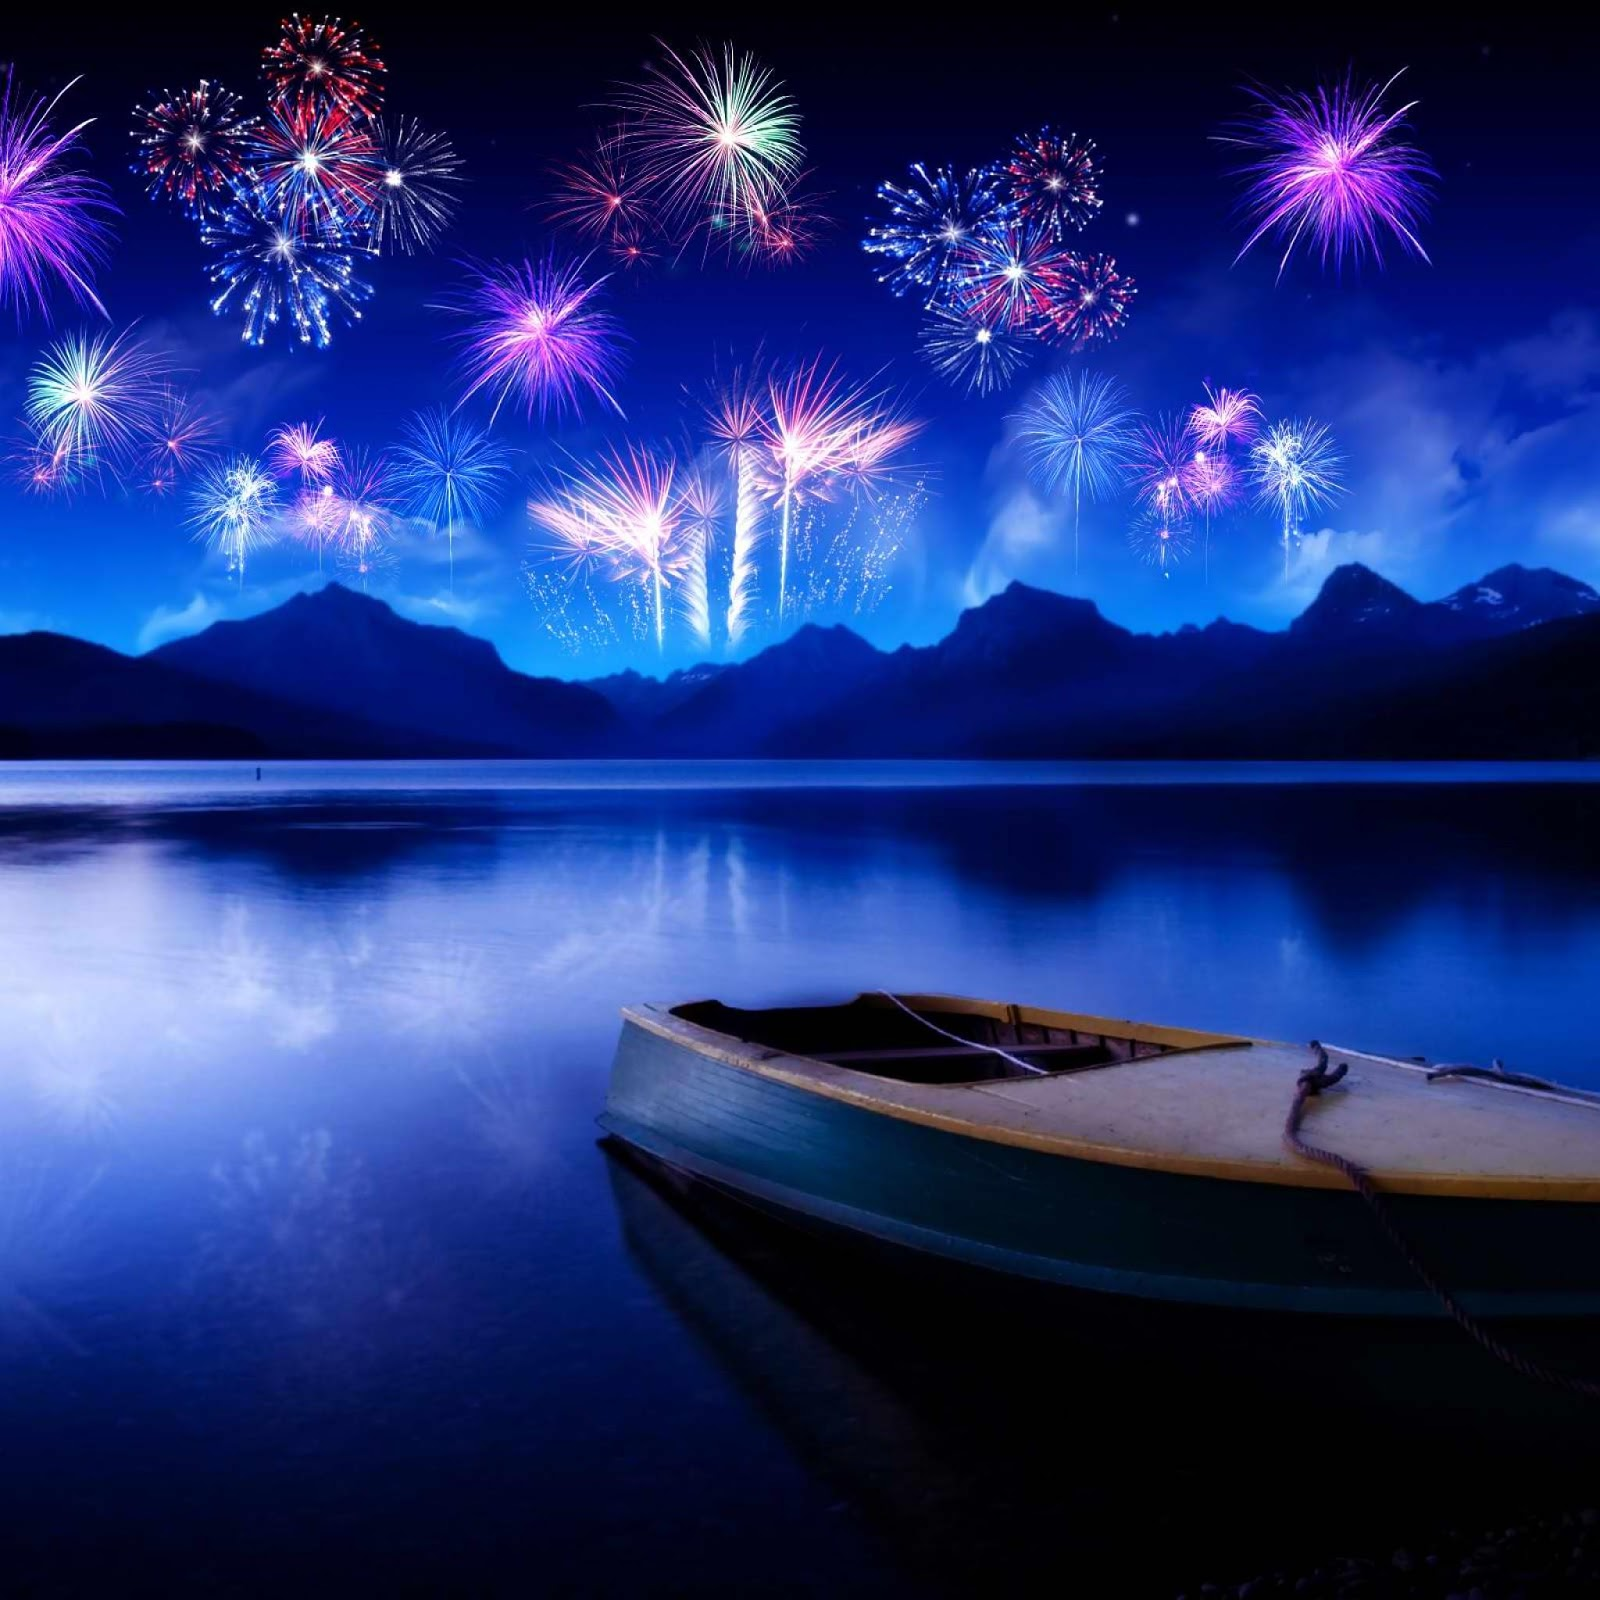 iPad Wallpapers: Free Download New Year 2013 iPad Wallpapers 2048x2048